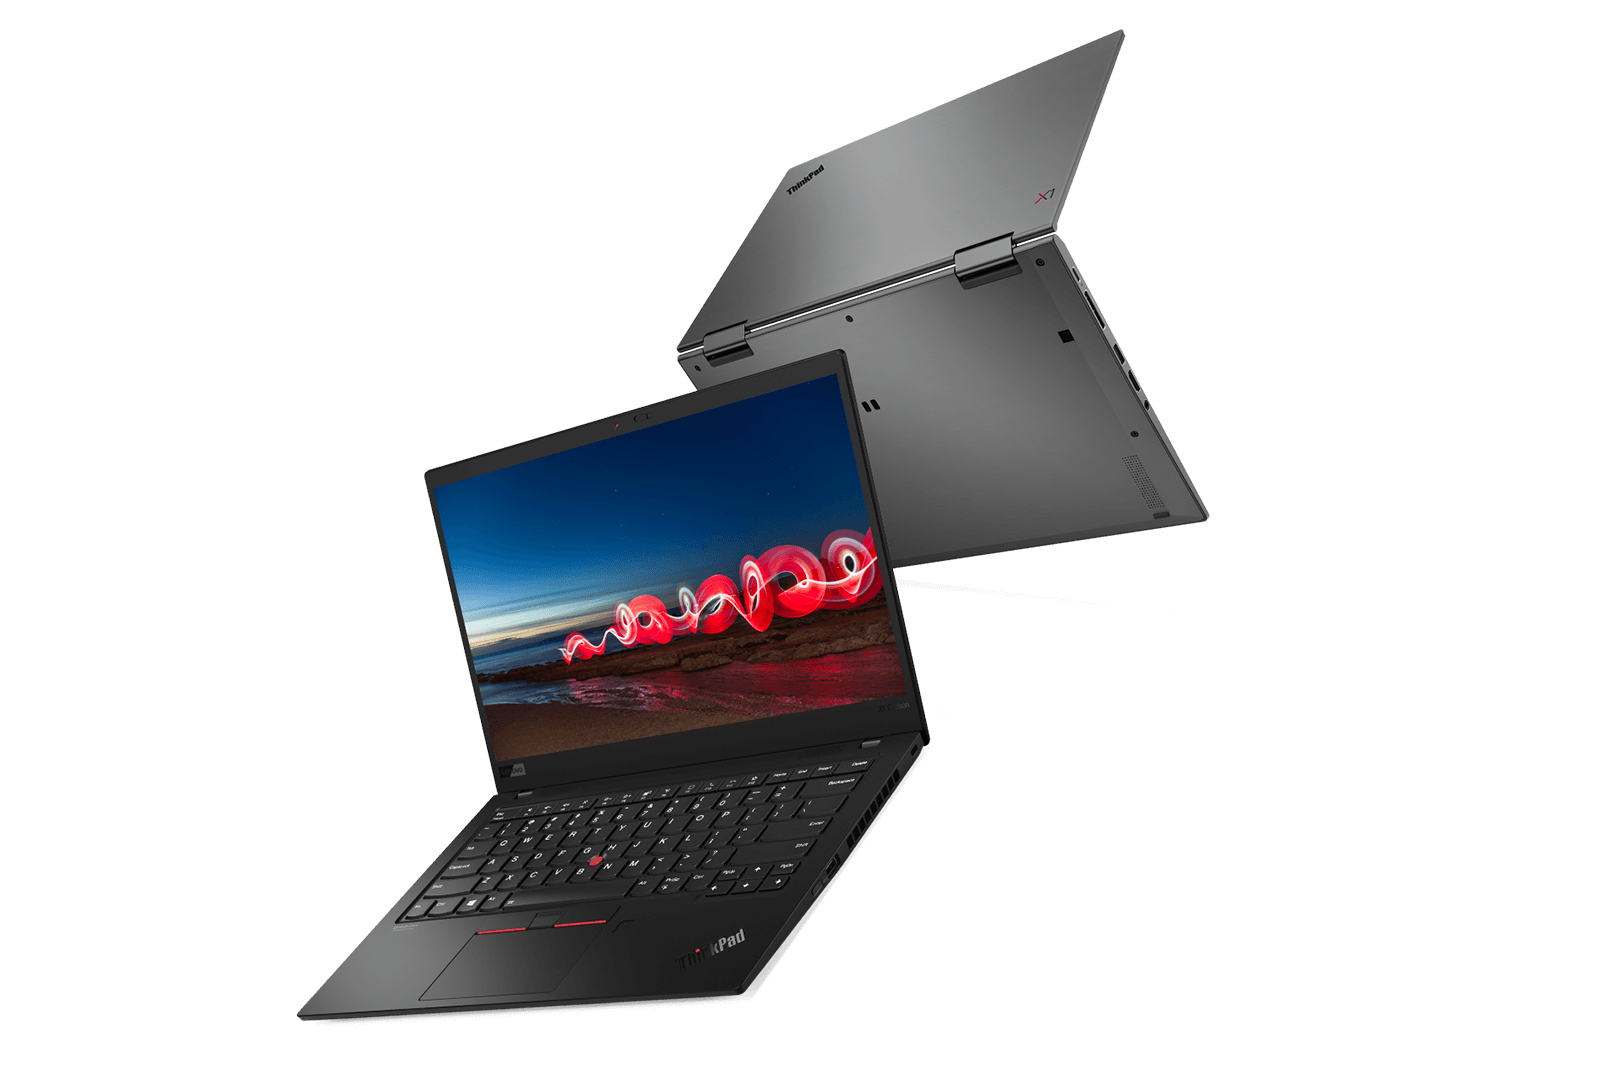 Two ThinkPad X1 Carbon laptops